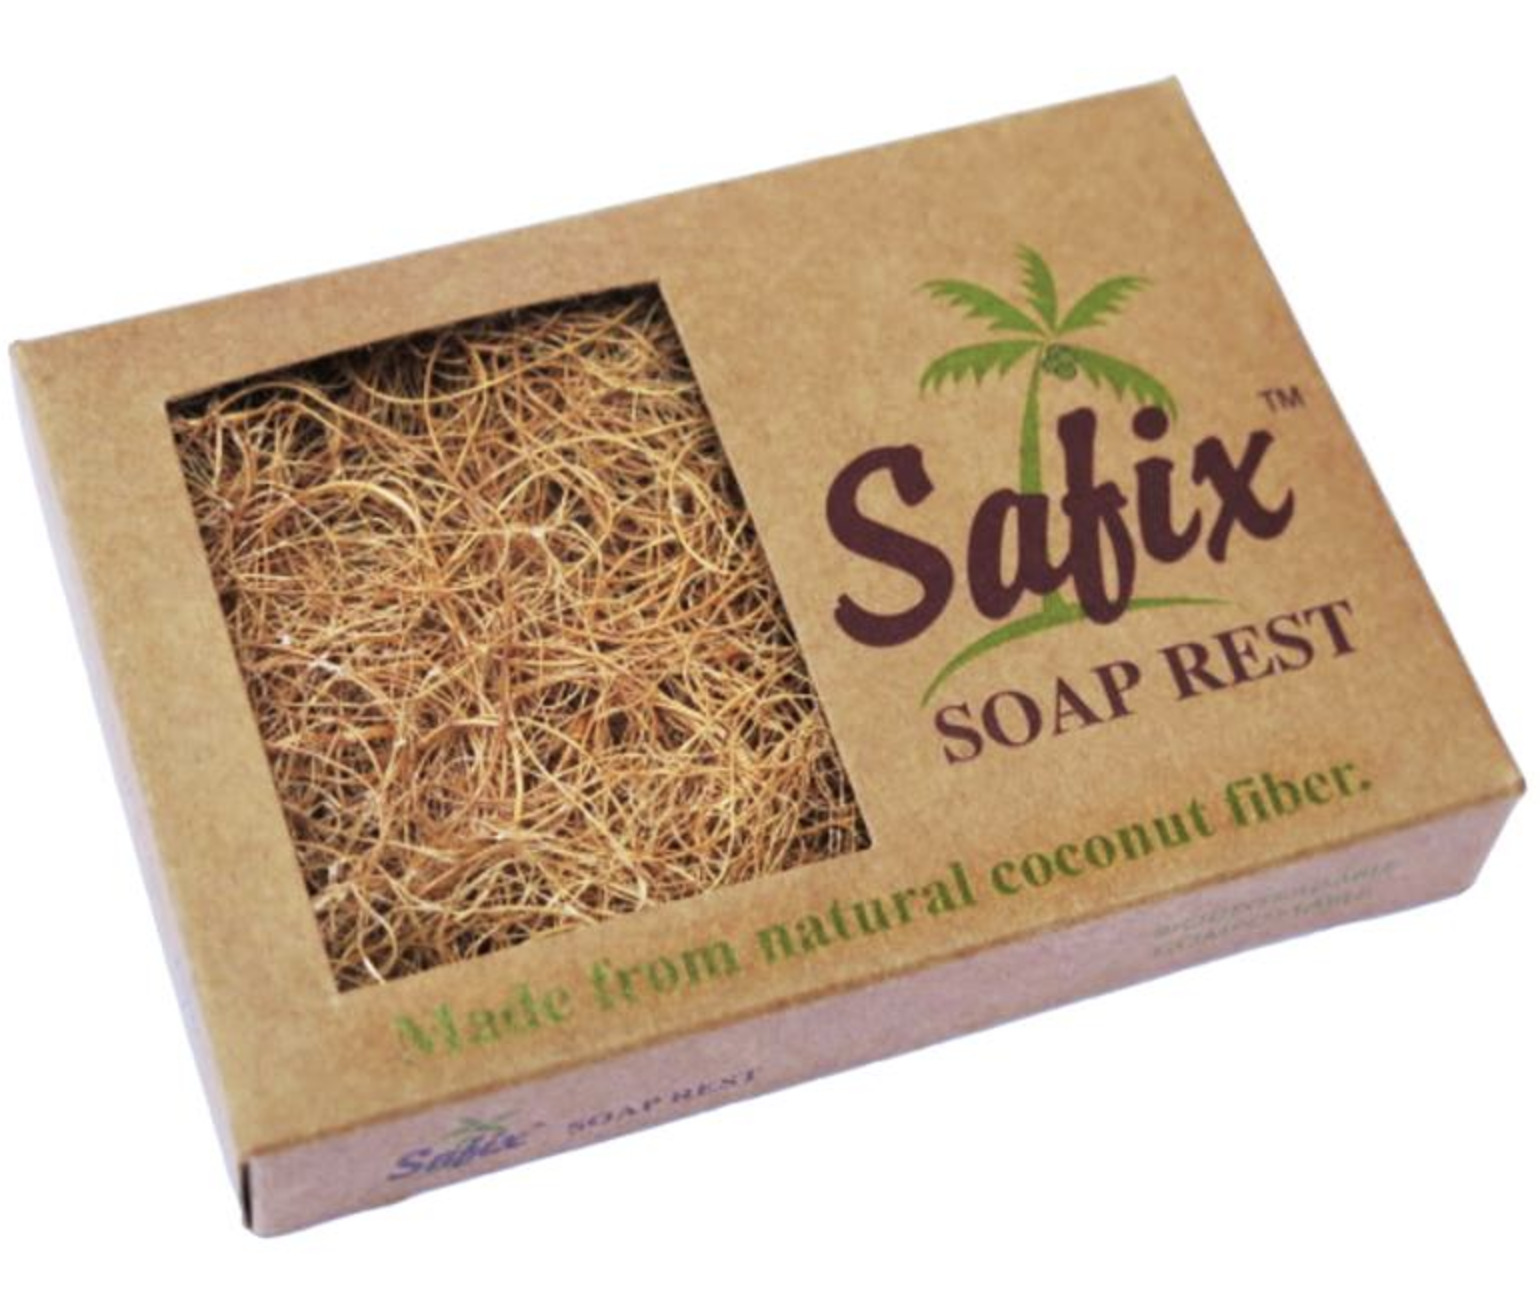 Soap Rest, Coconut Fibre (Safix)